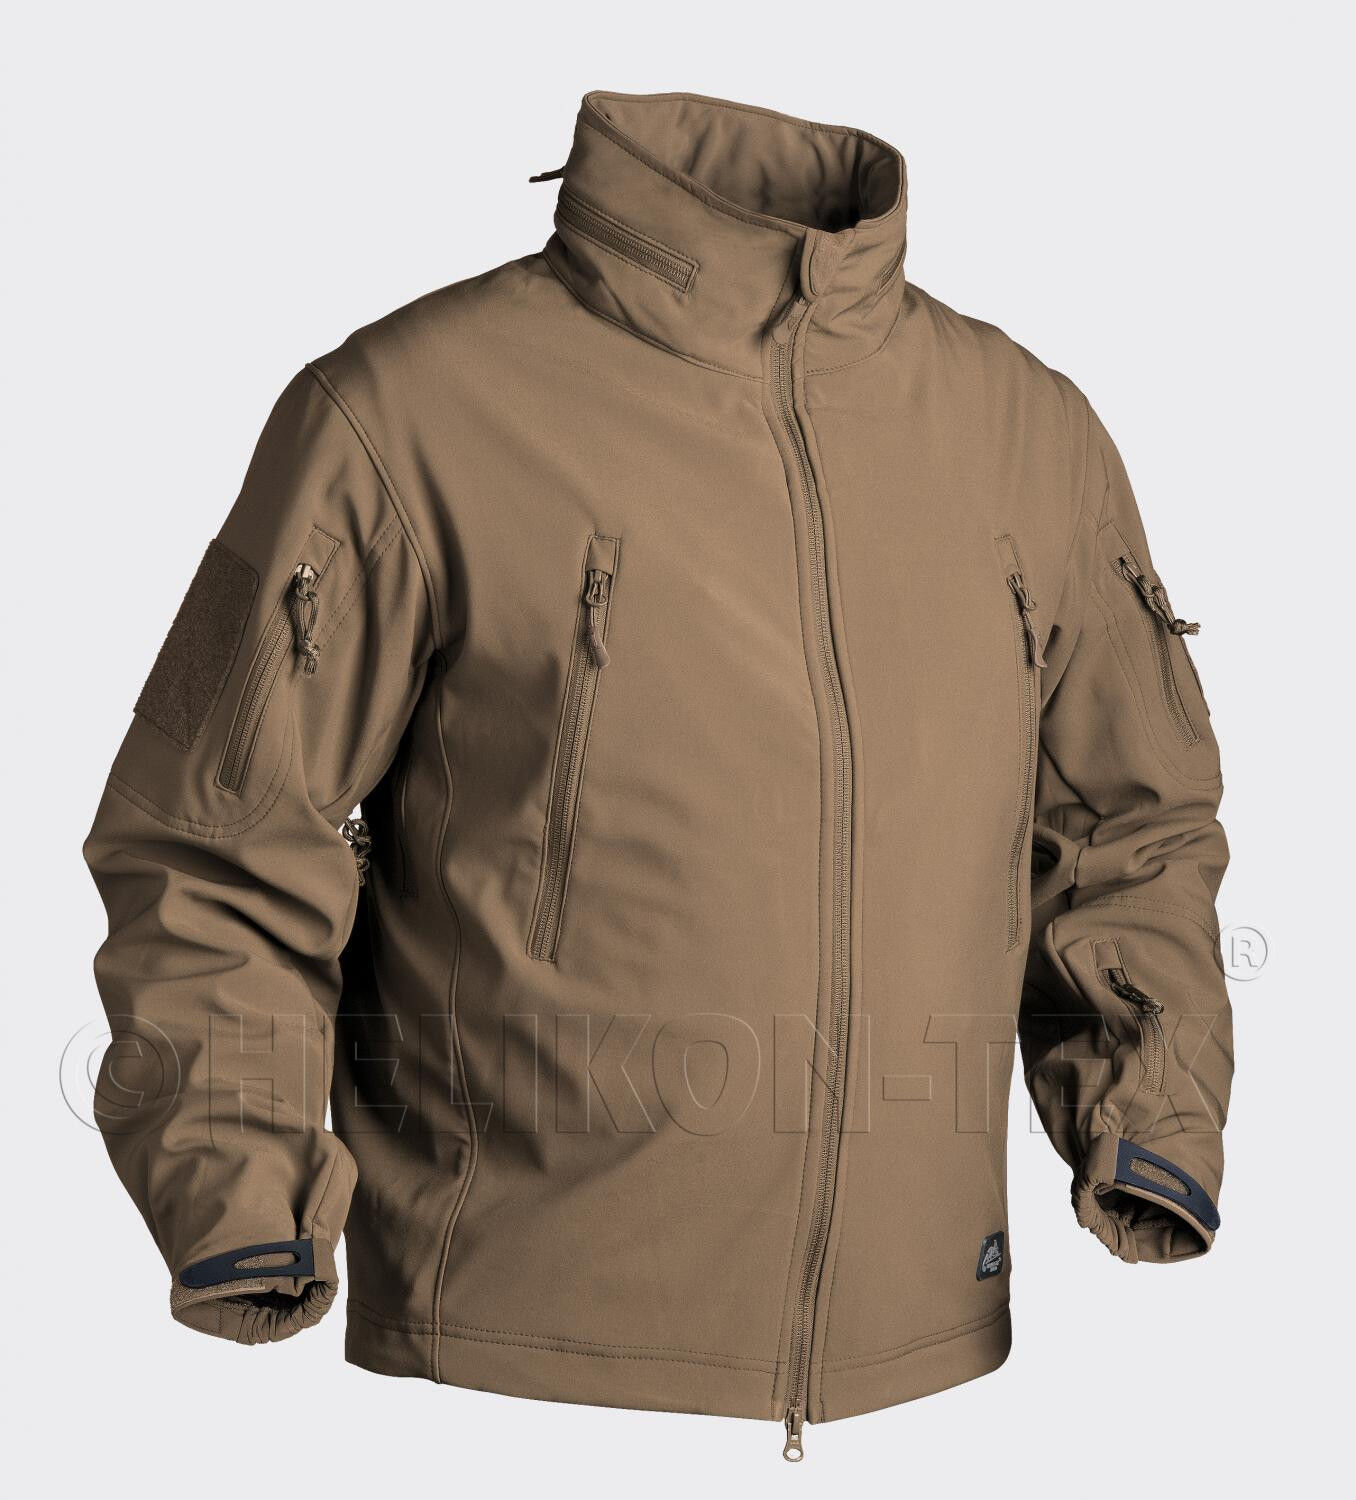 HELIKON tex Gunfighter Shark soft shell chaqueta outdoor Jacket coyote XXL xxlarge